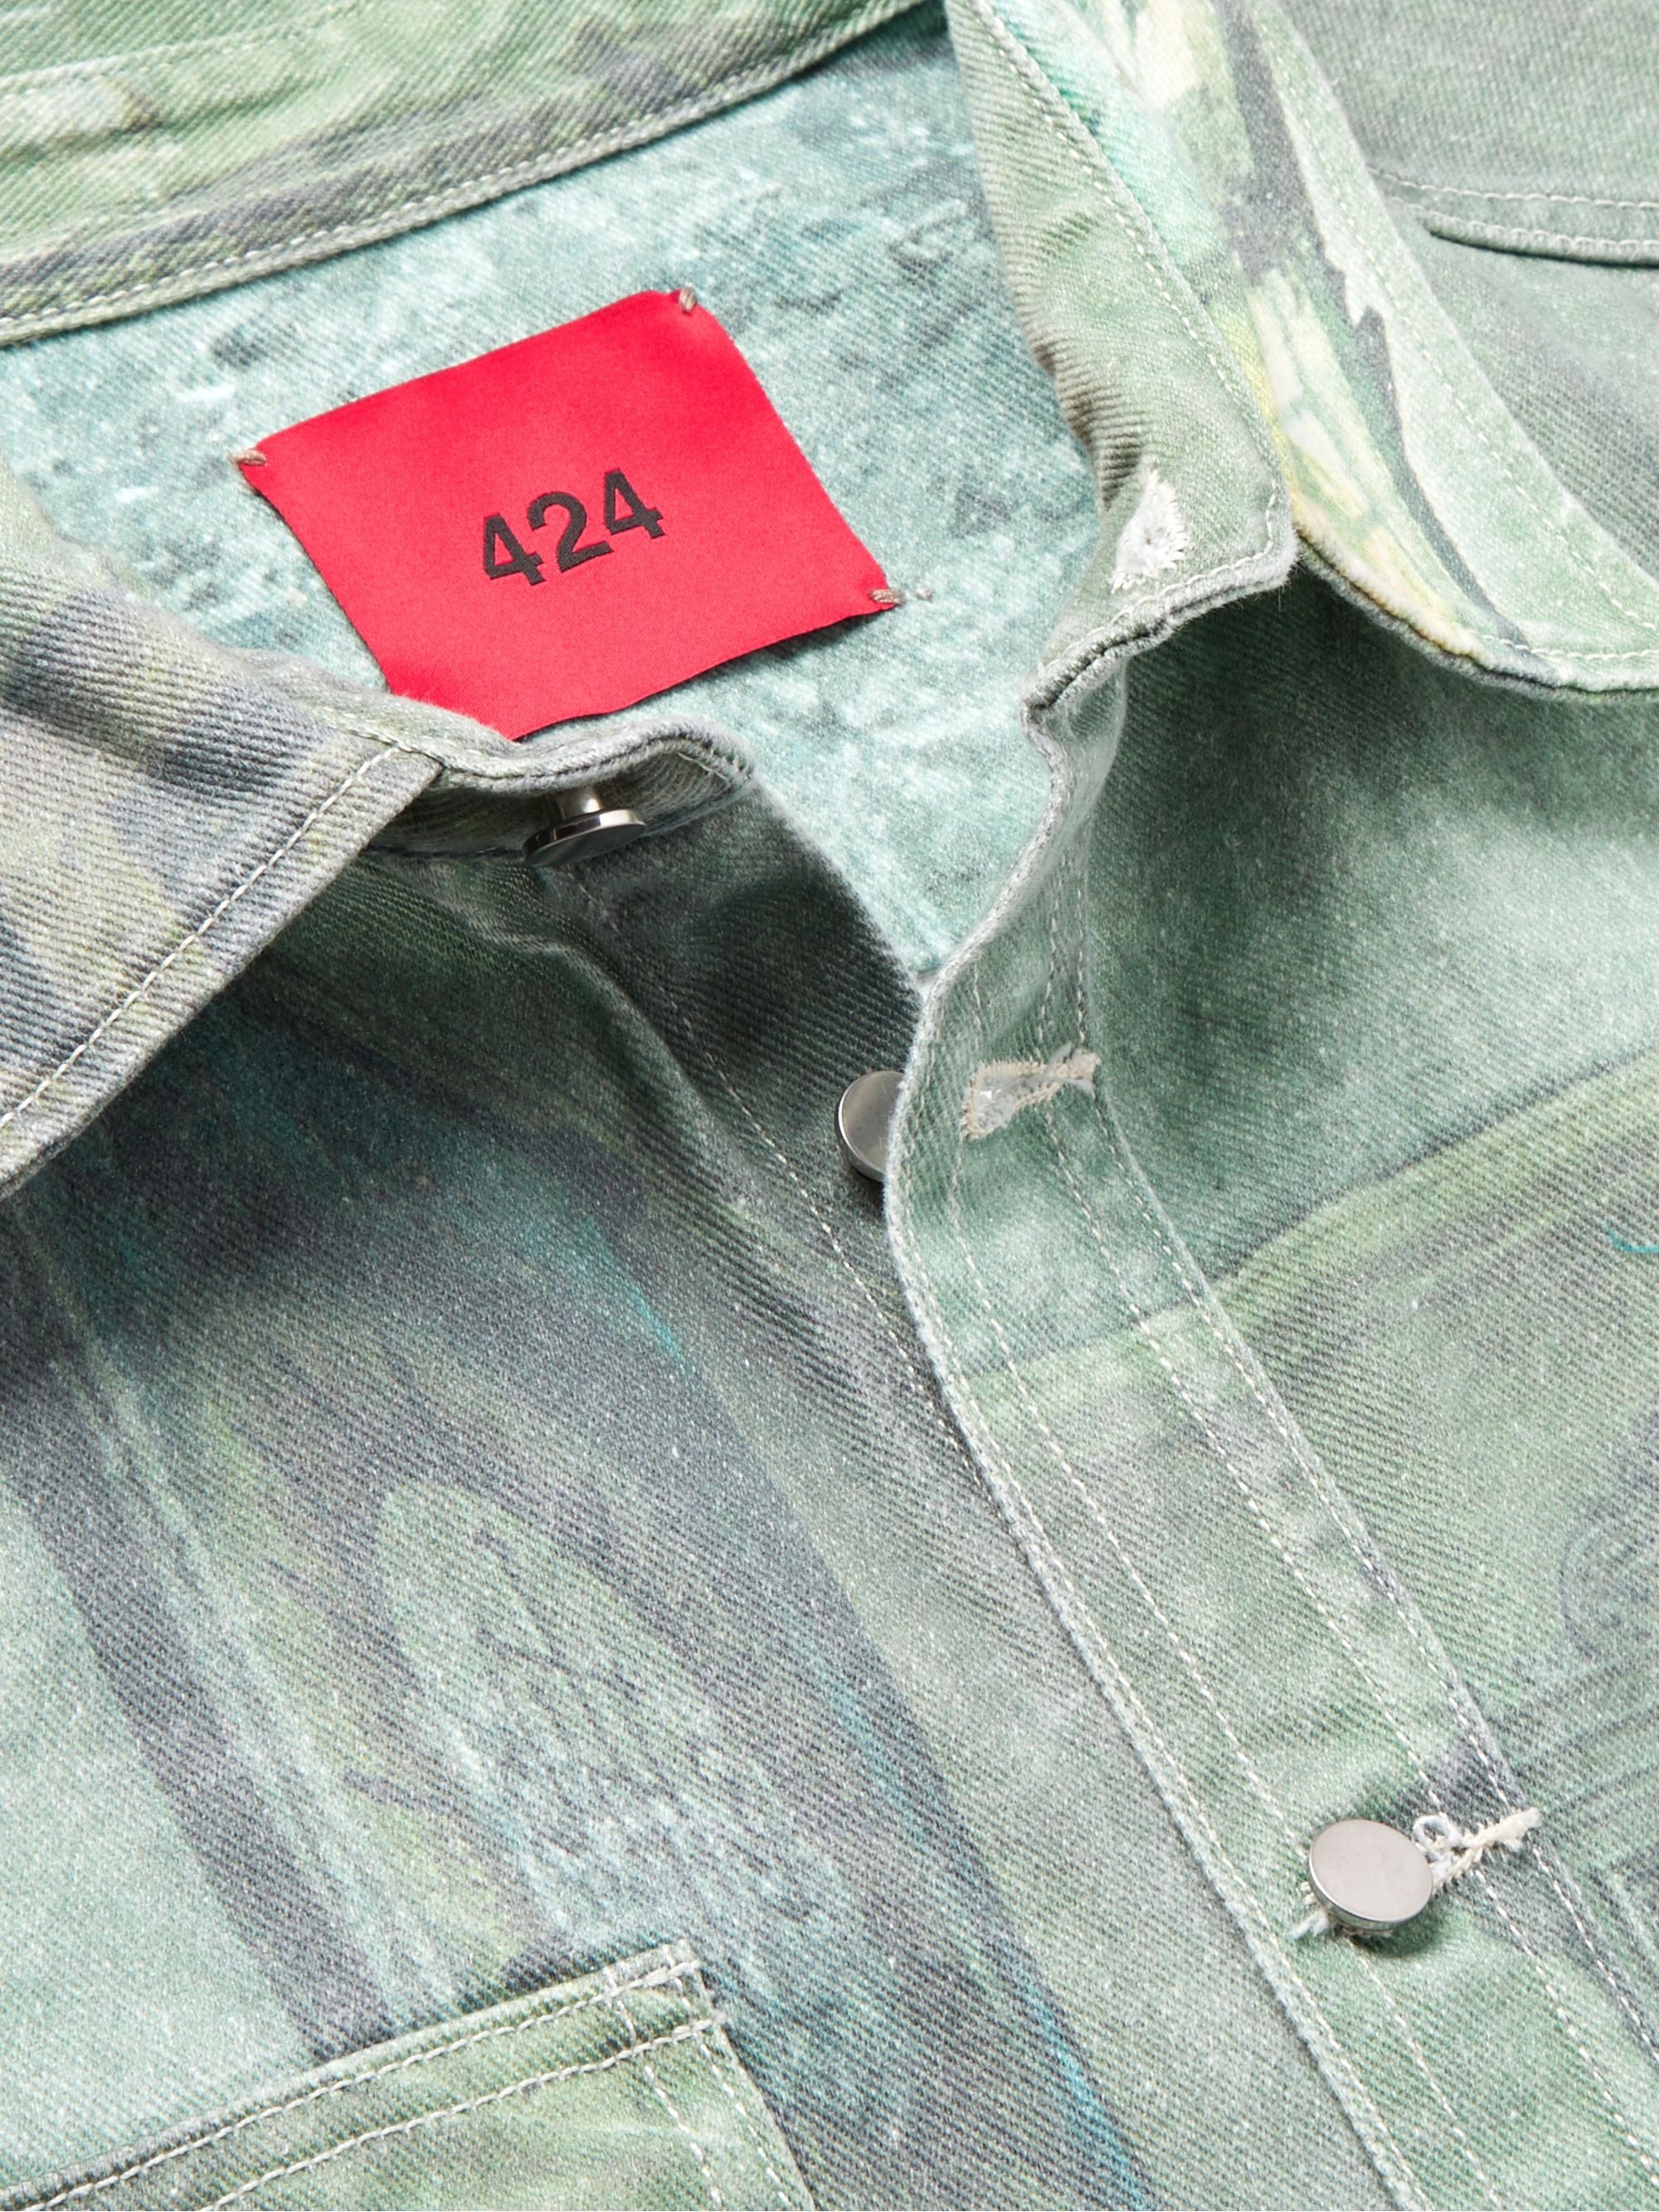 424 Printed Denim Shirt Jacket